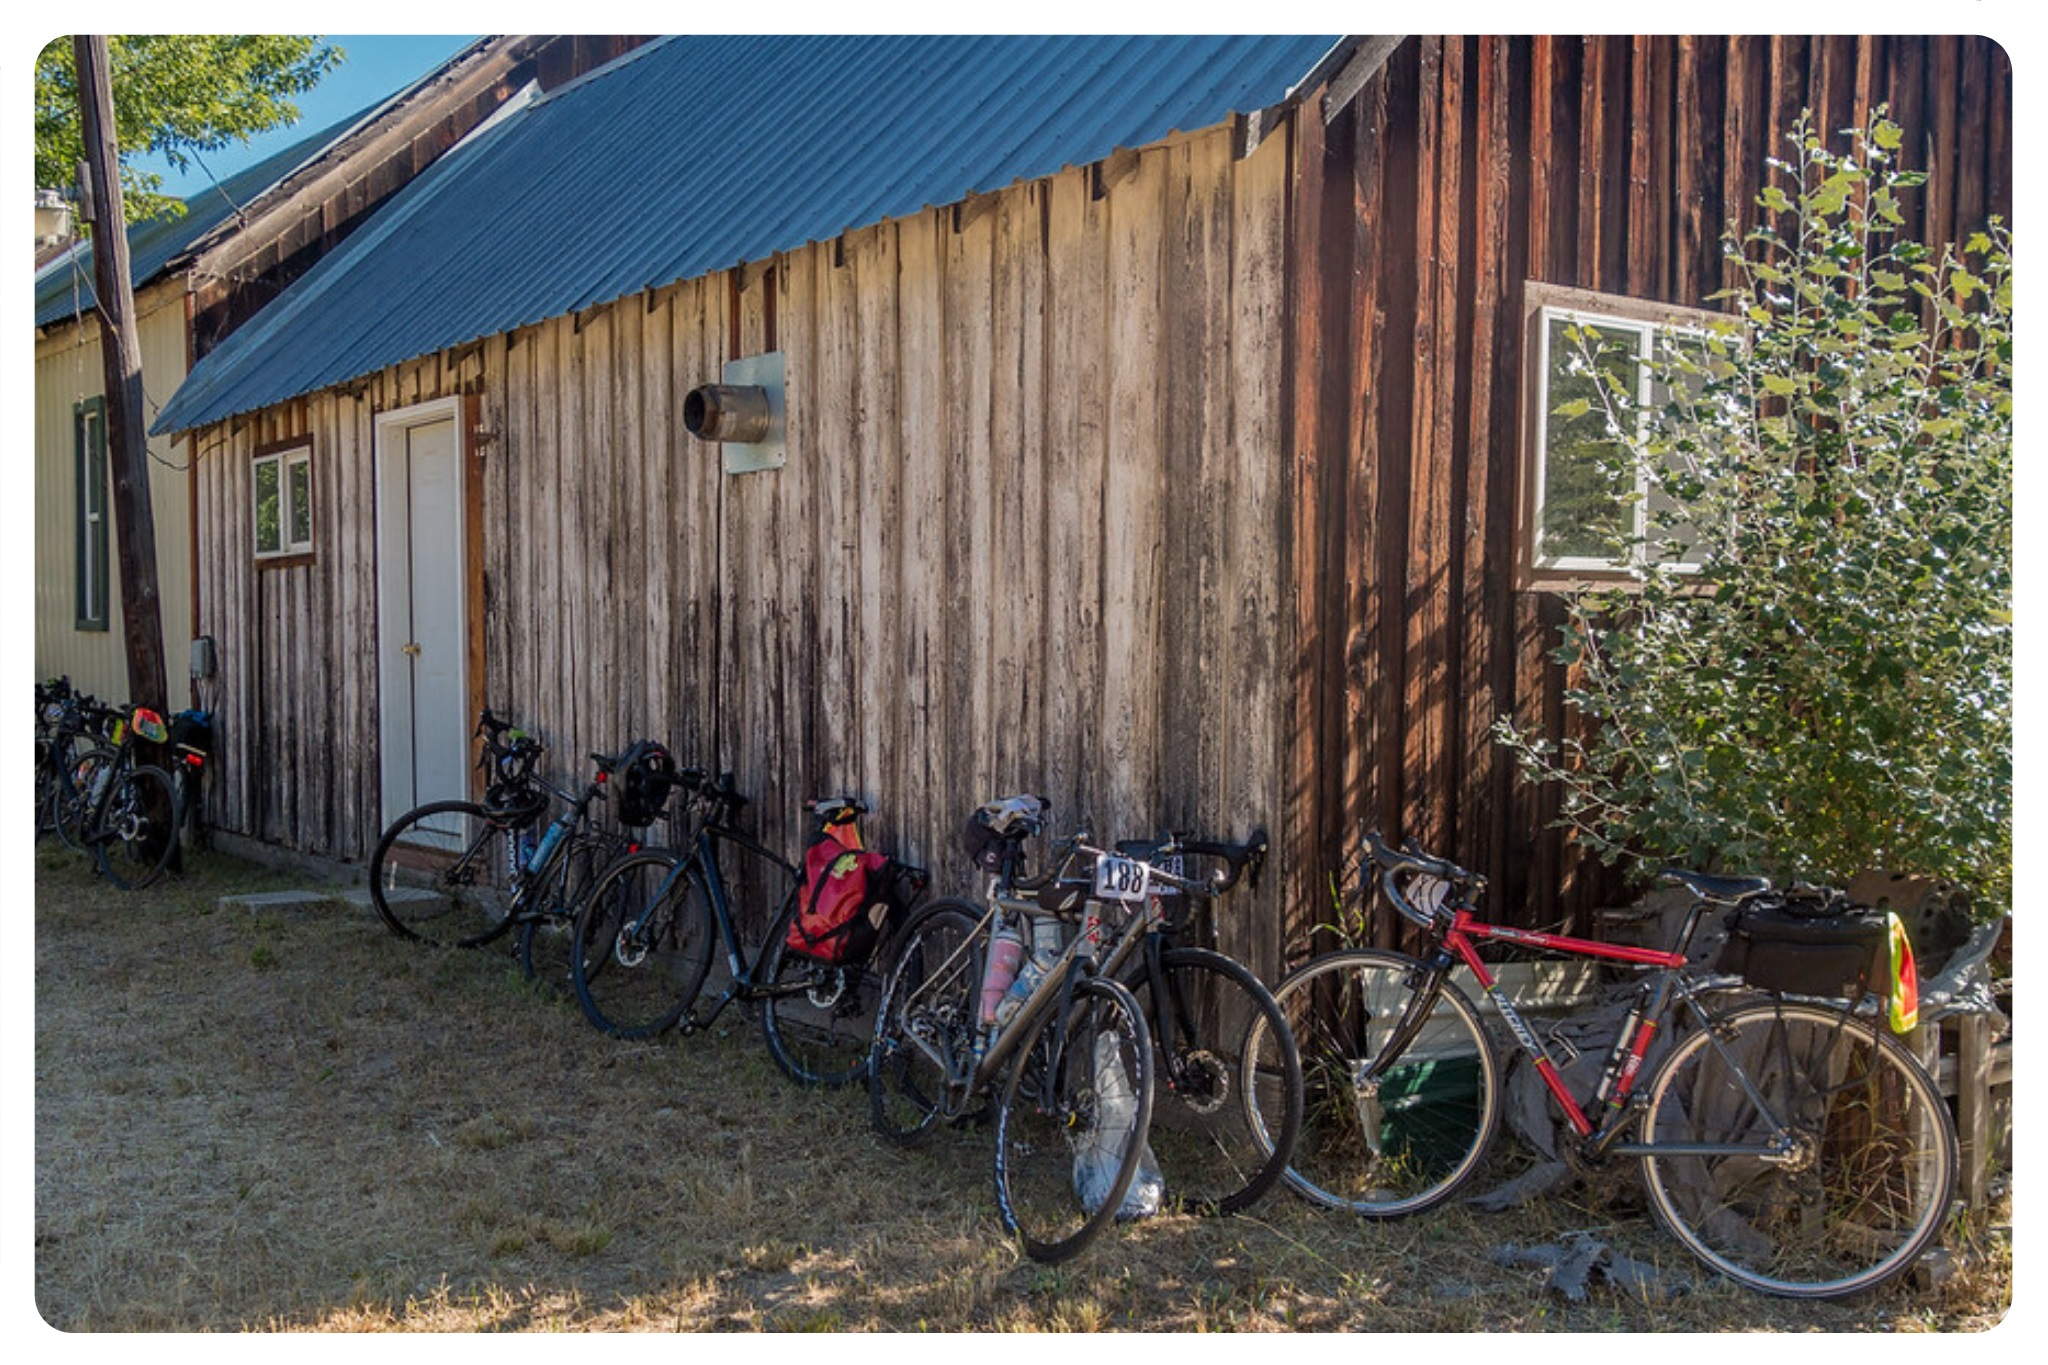 Several bicycles lean against a worn wood-sided building during RAW